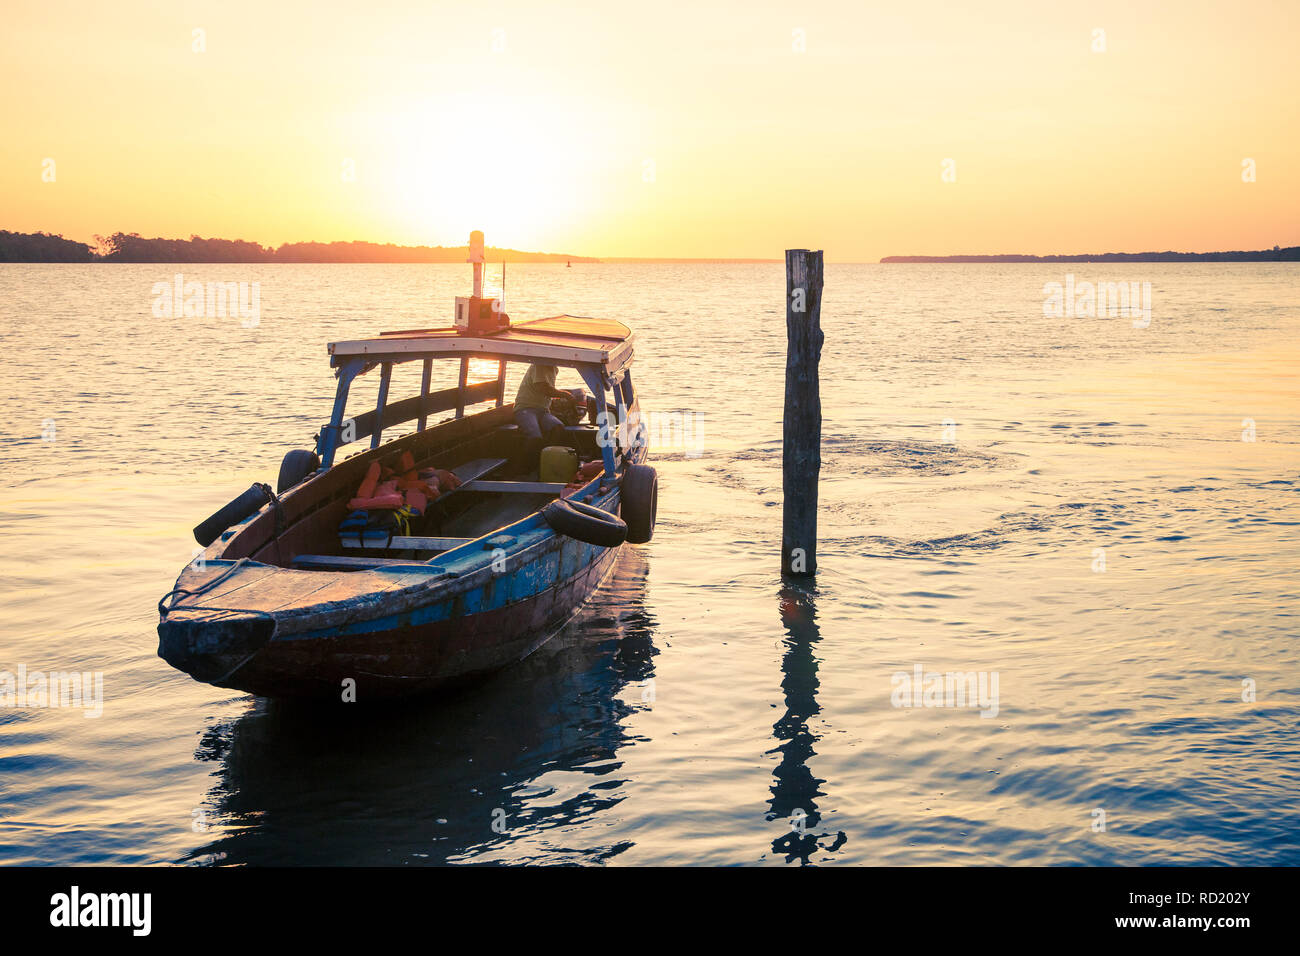 Colorful traditional boats on the Suriname river, Suriname - Stock Image